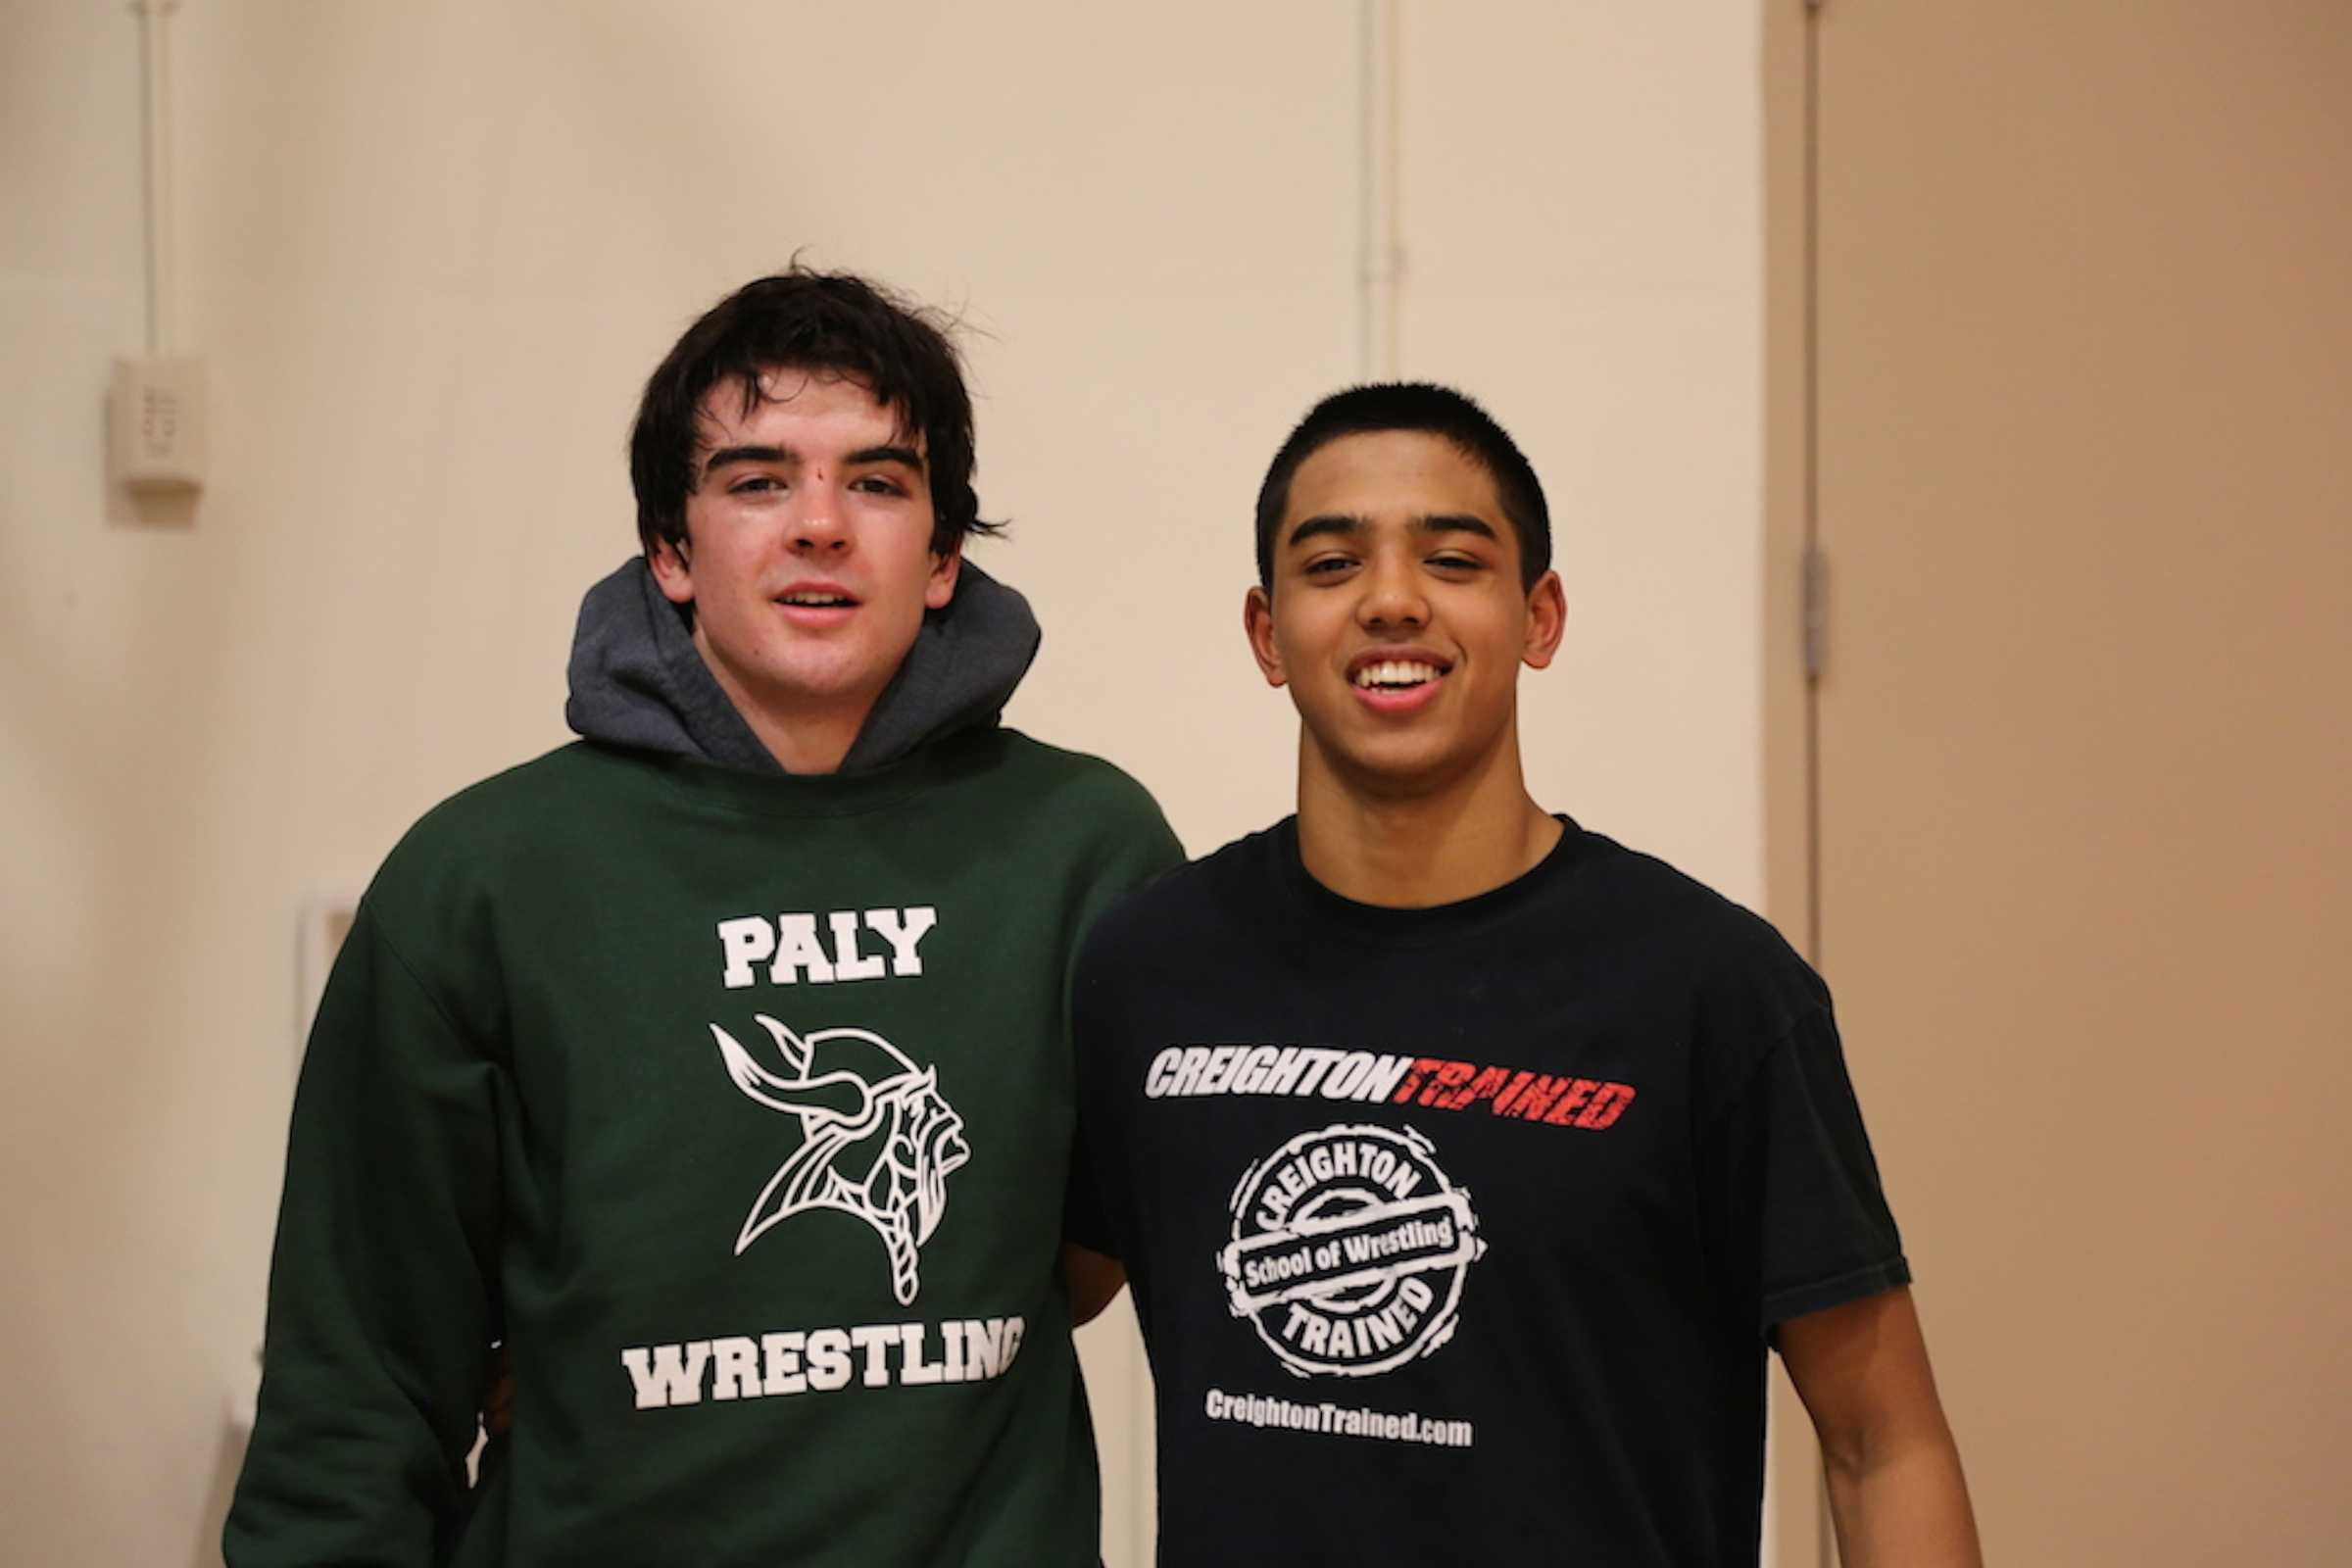 Paly wrestlers Seth Goyal ('17) and James Giaccia ('15) pose together after a meet.